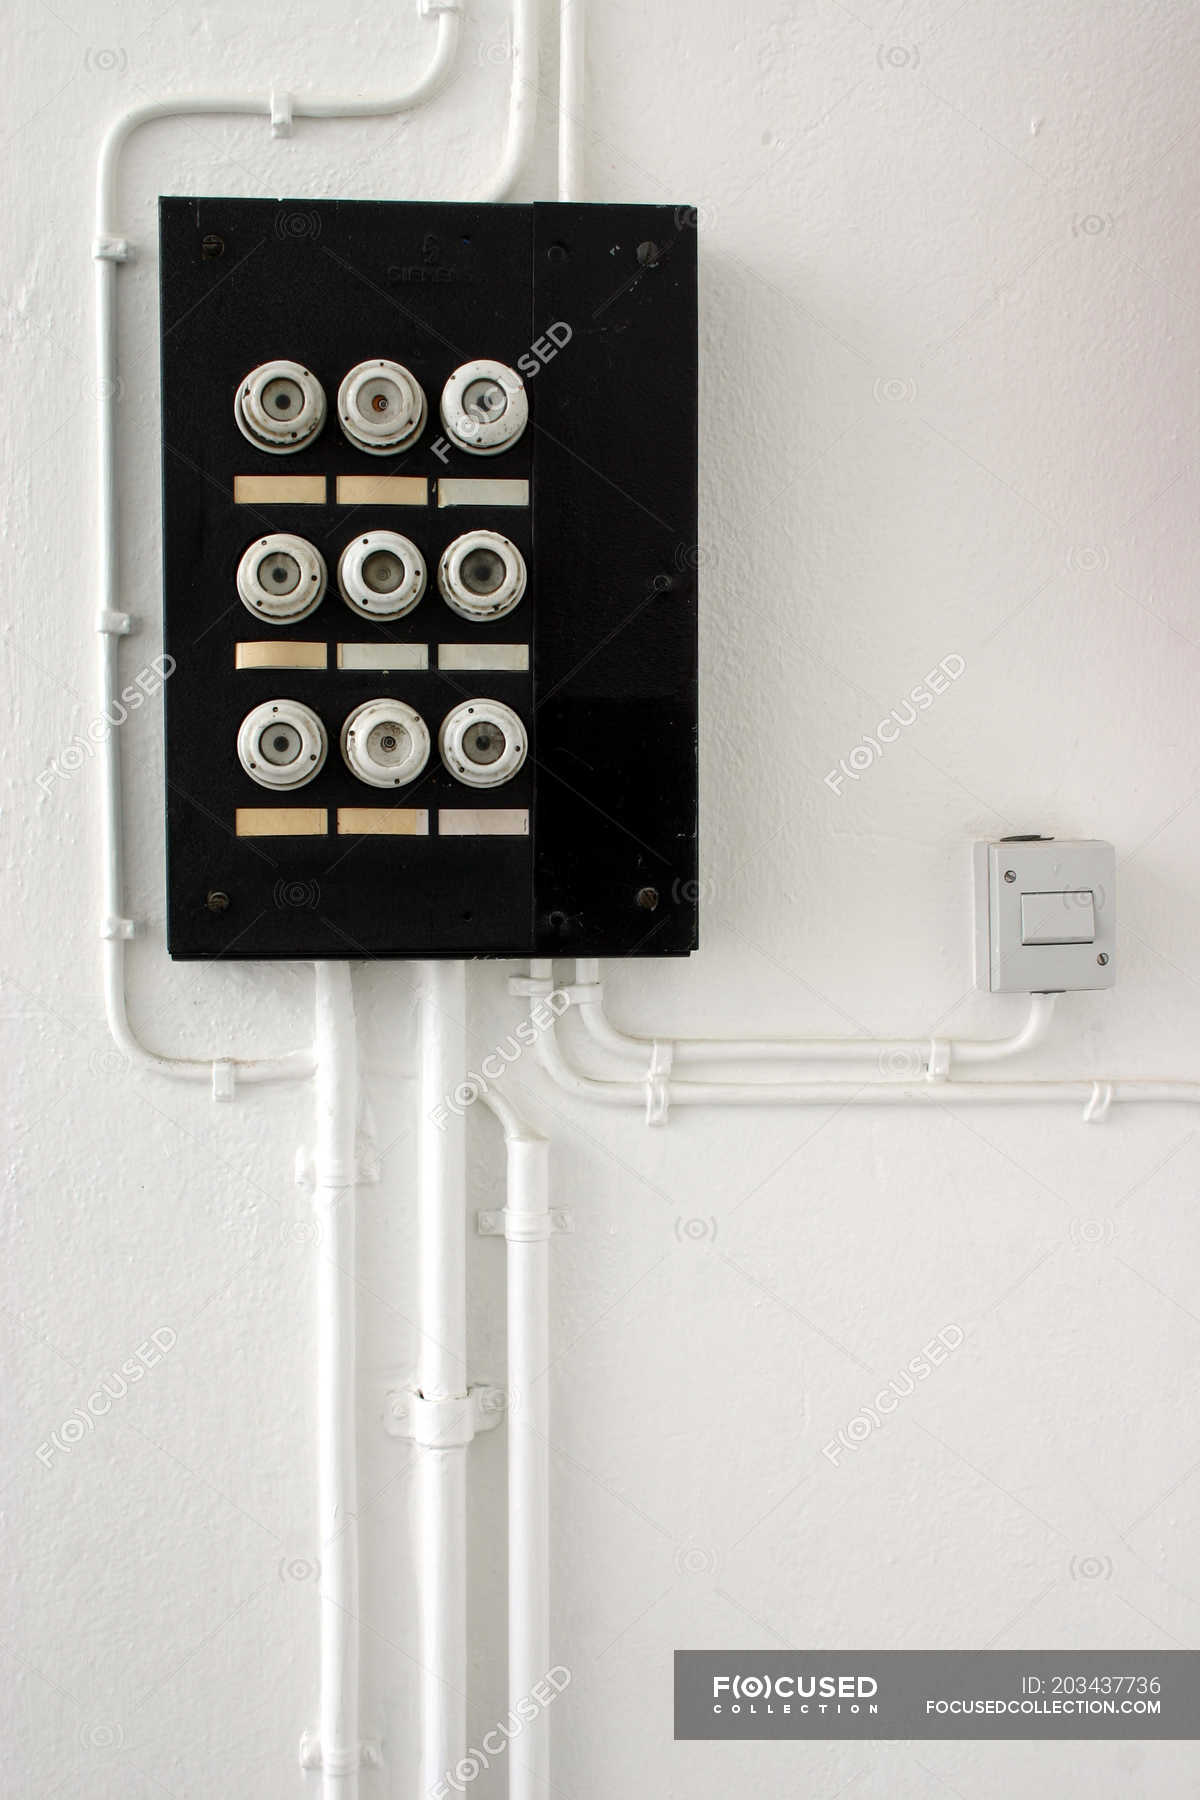 hight resolution of wall with fuse box safety switch server stock photos